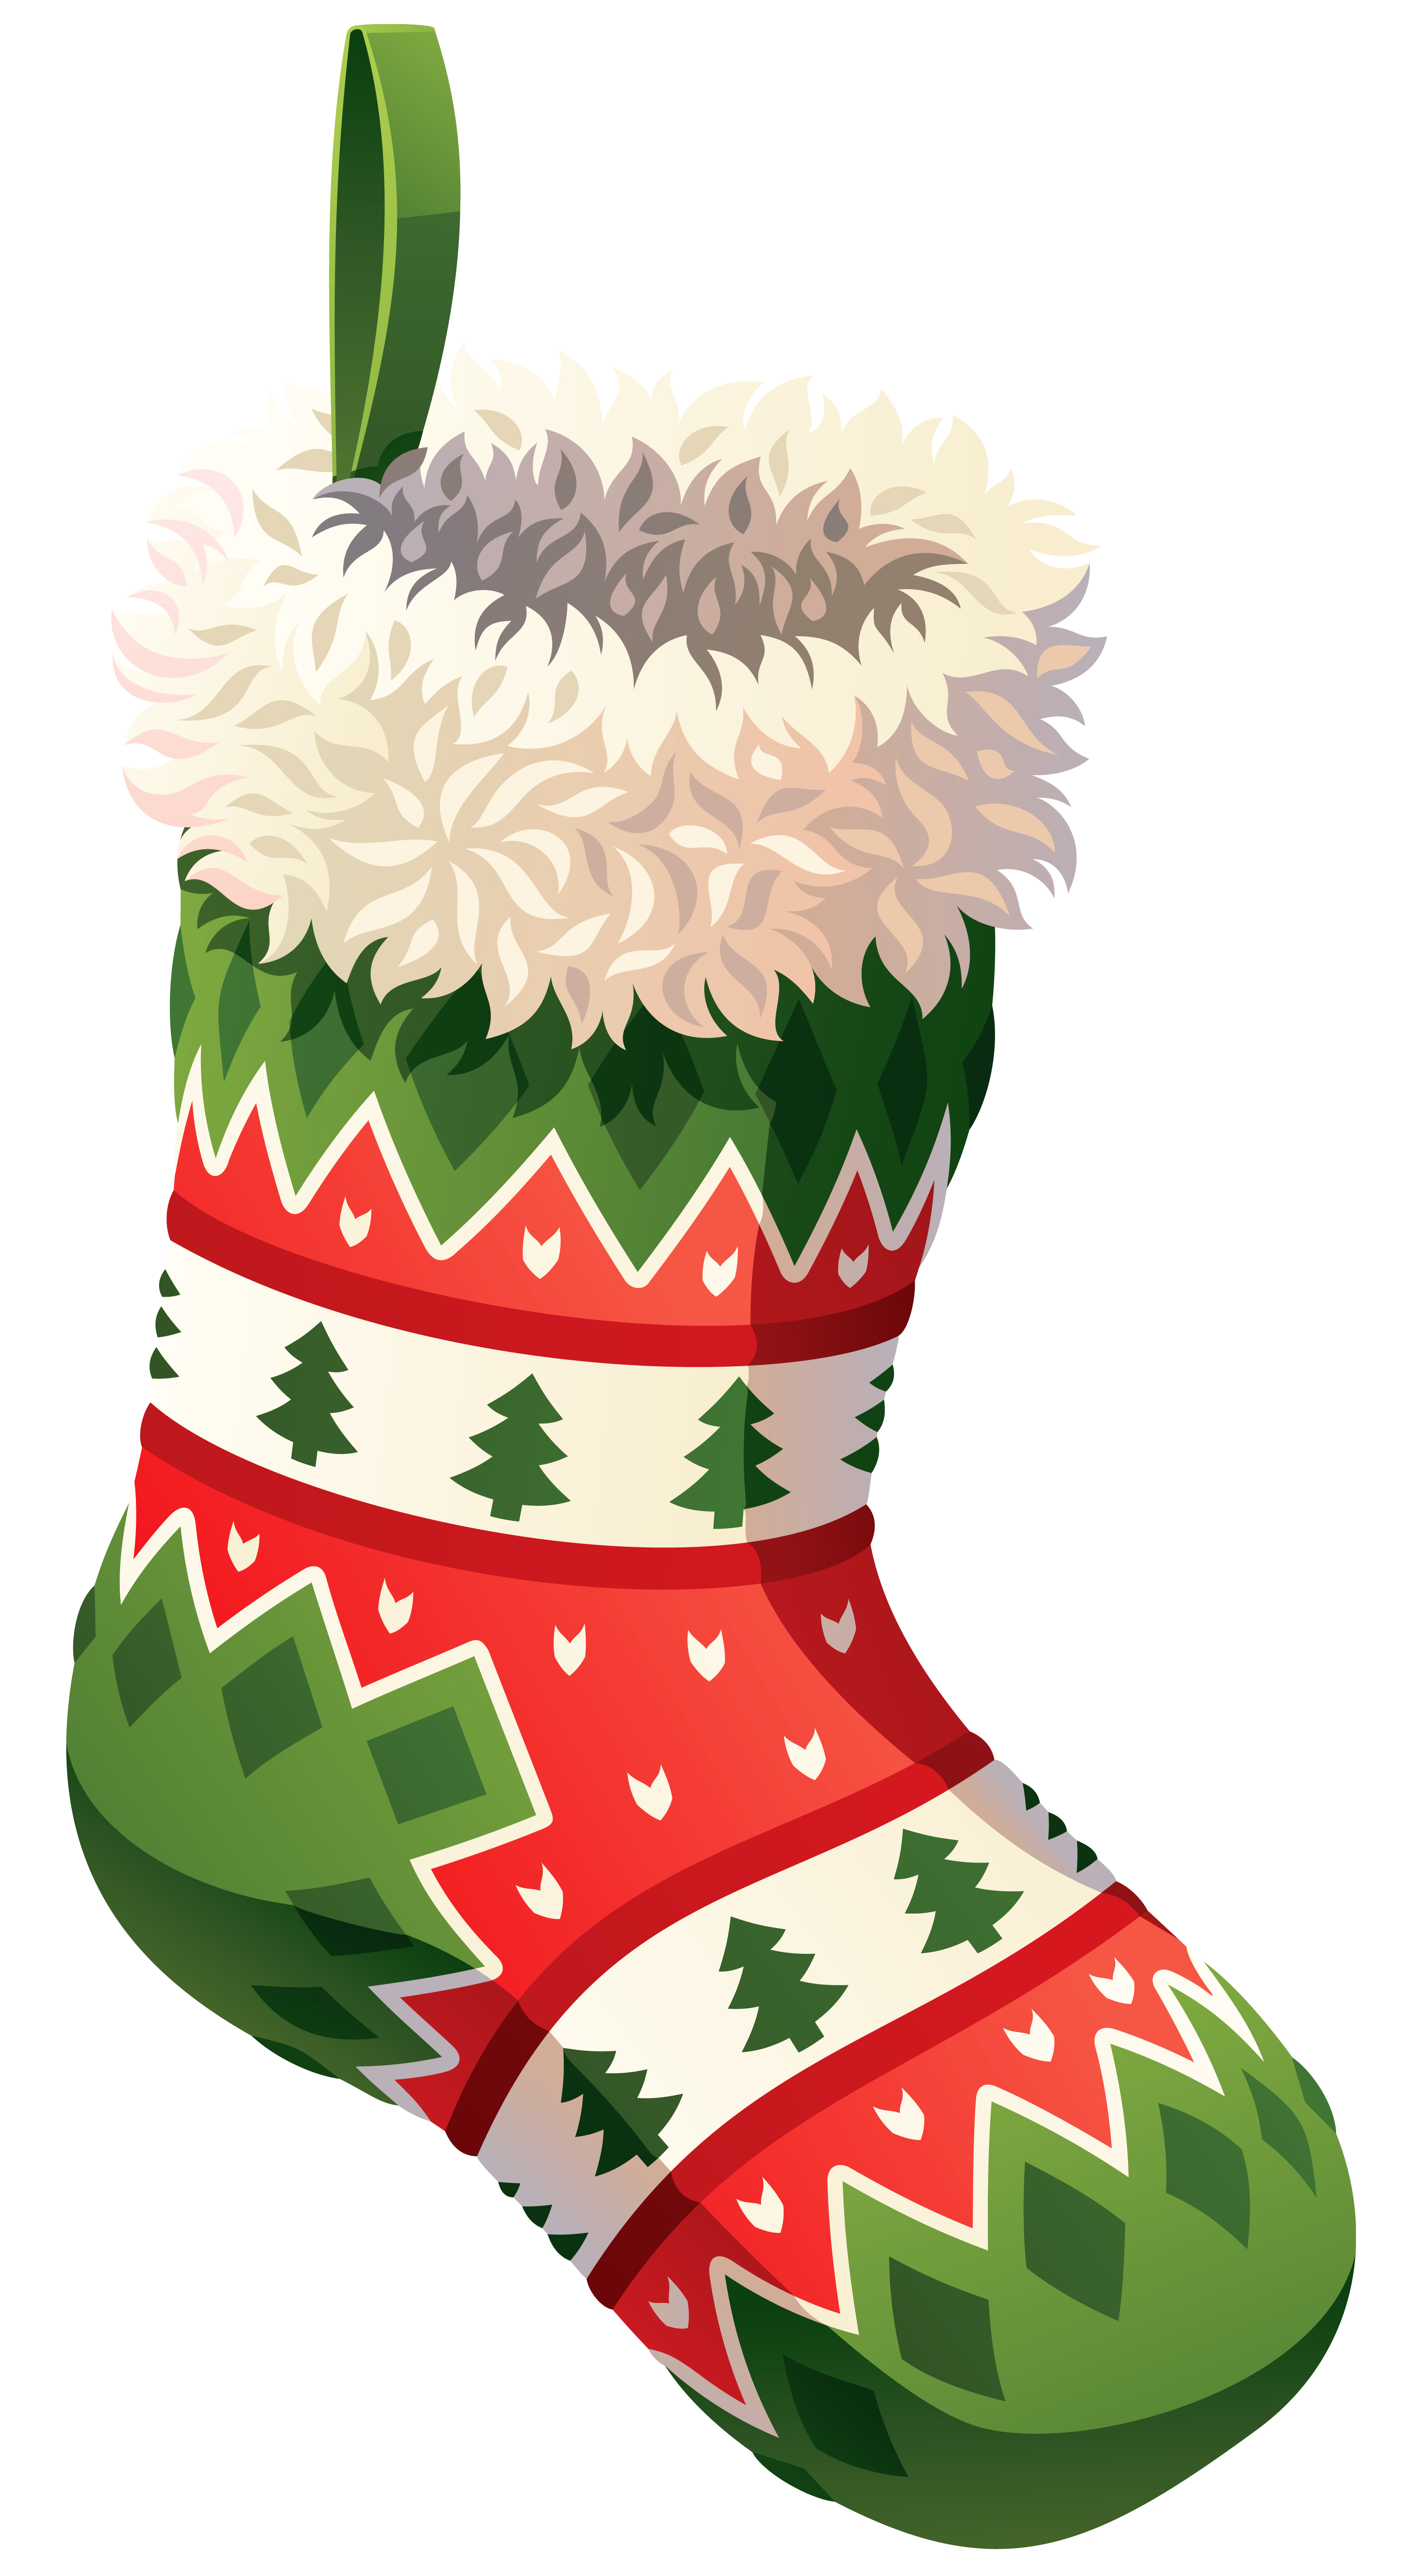 Christmas stocking png. Clip art image gallery